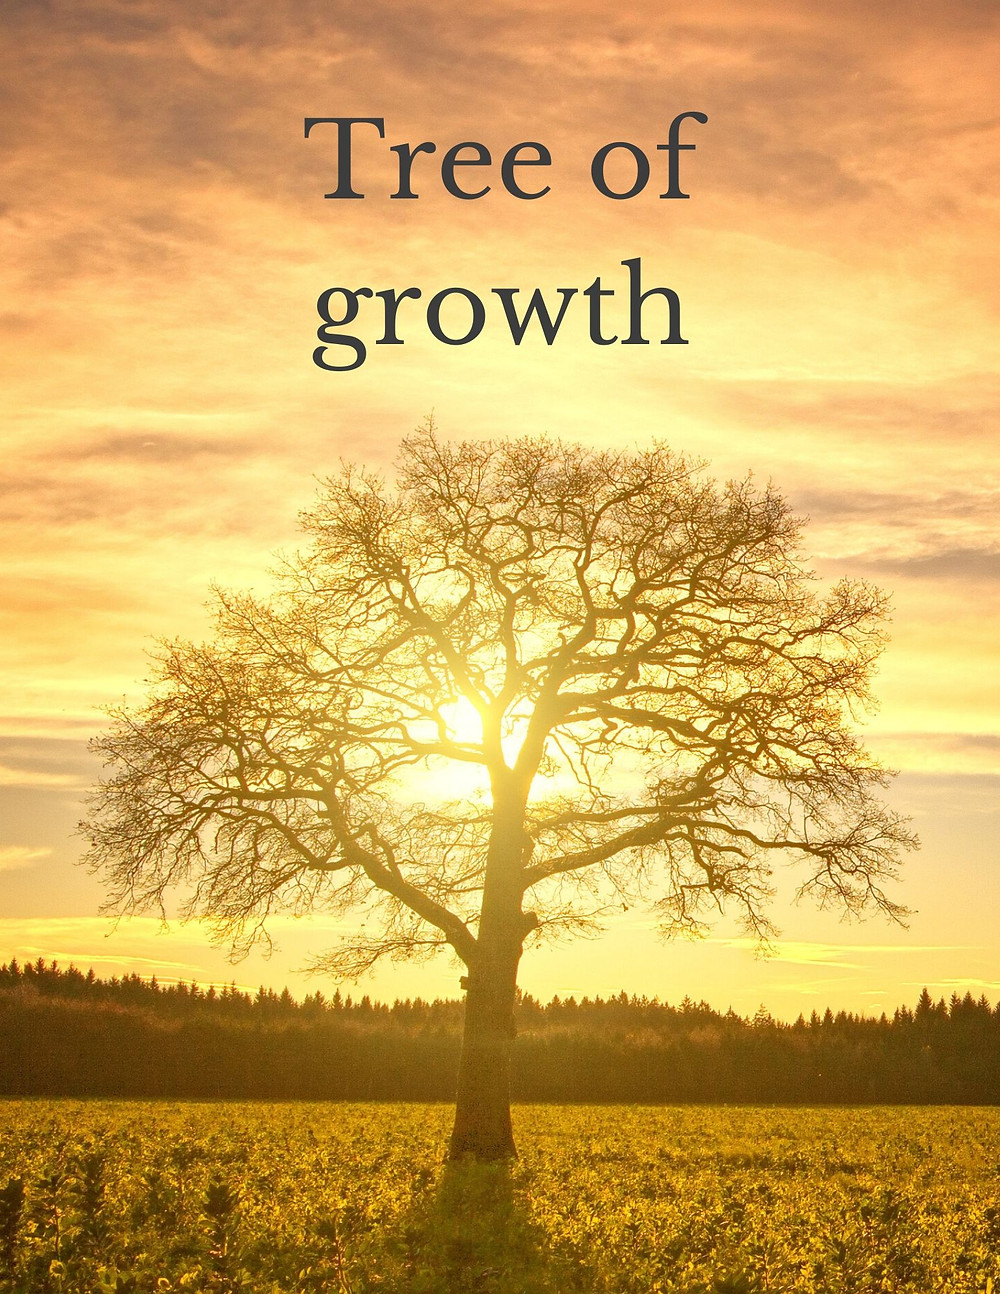 Tree of growth